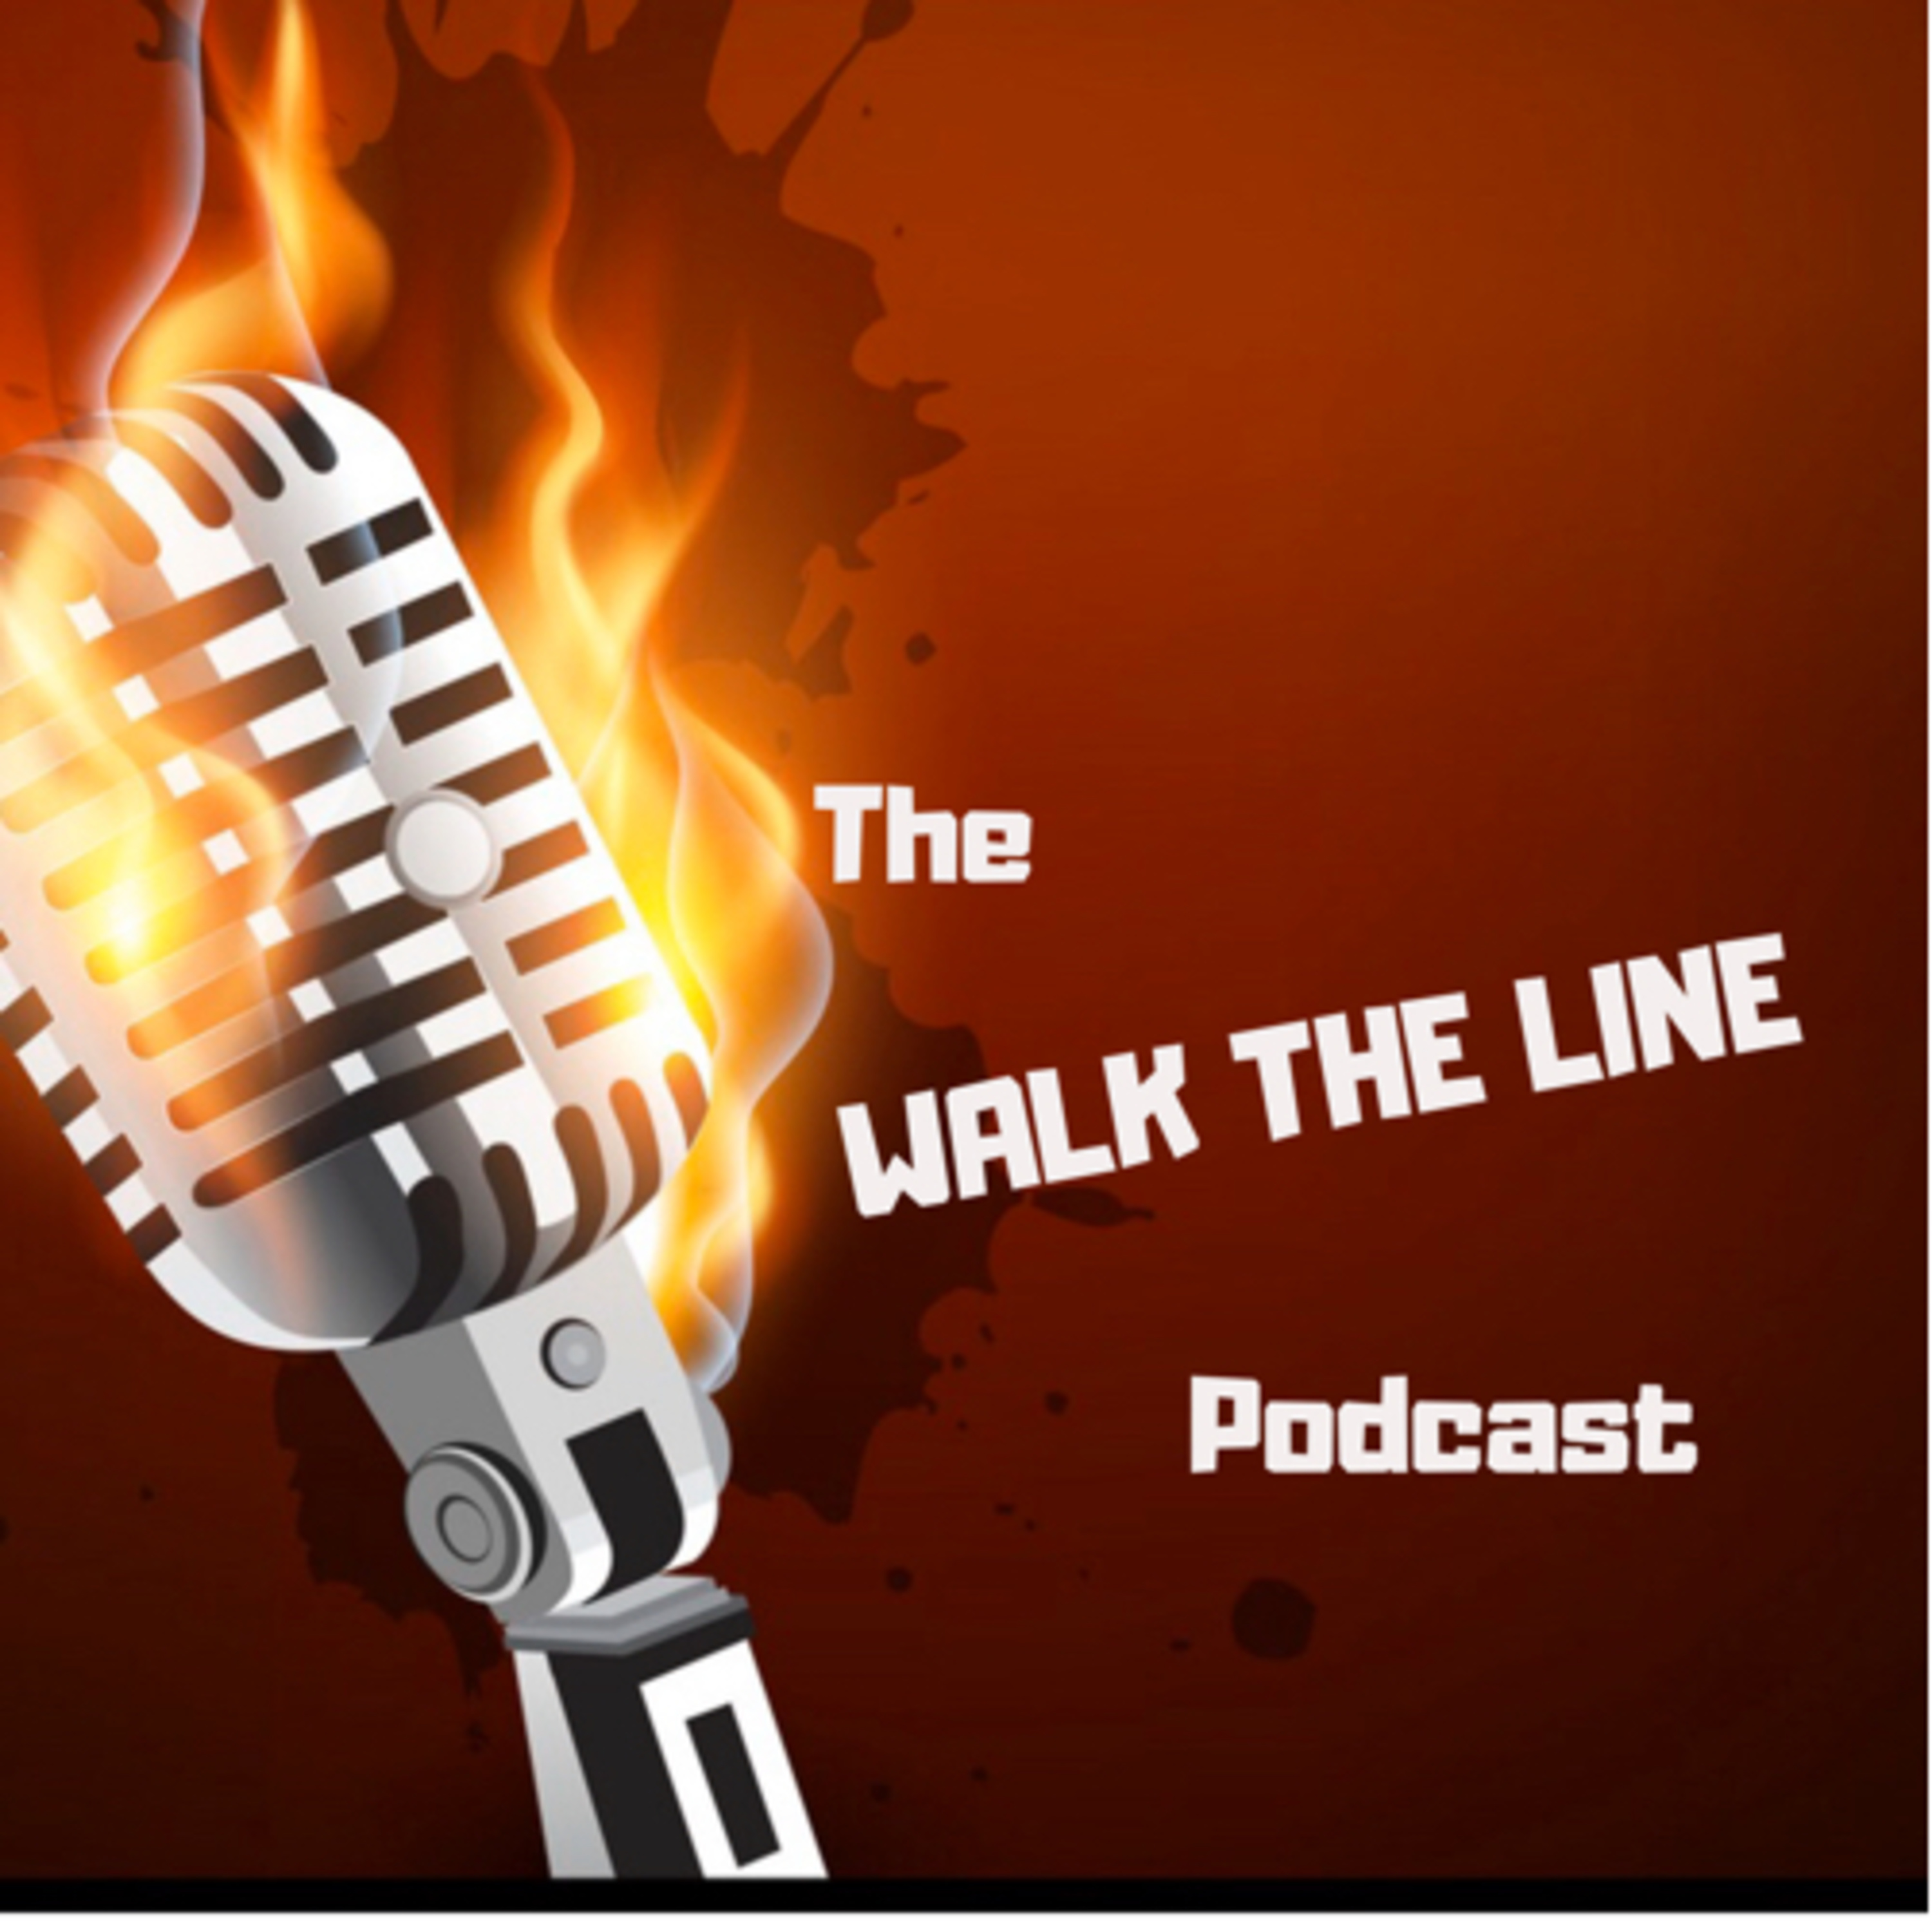 The Walk The Line Podcast show art